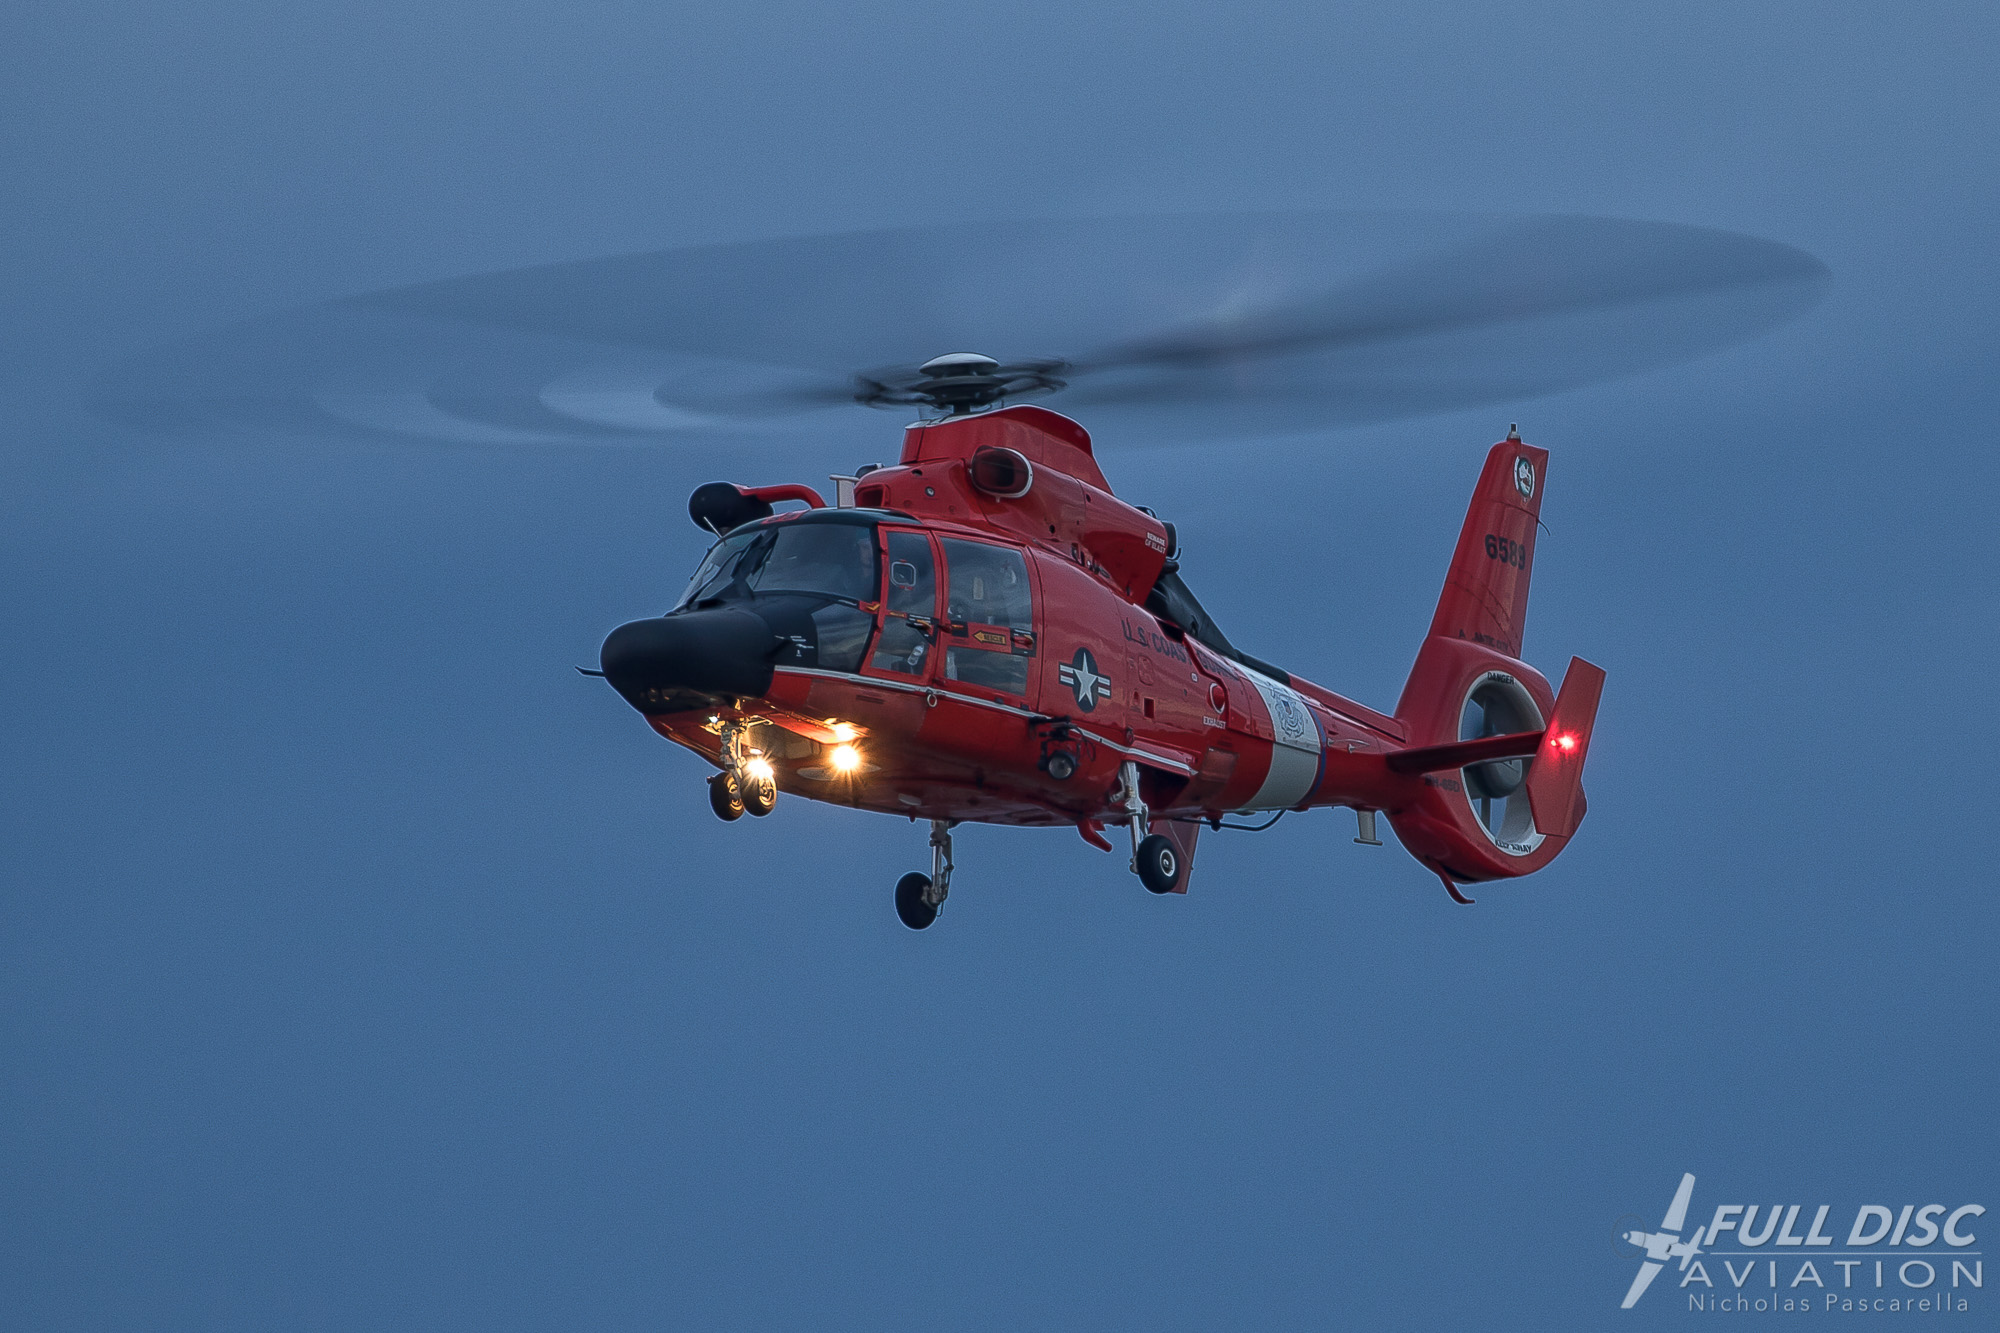 Coast Guard Chopper f/5.6, 1/15, ISO 100, a first shooting for a full rotor disc.